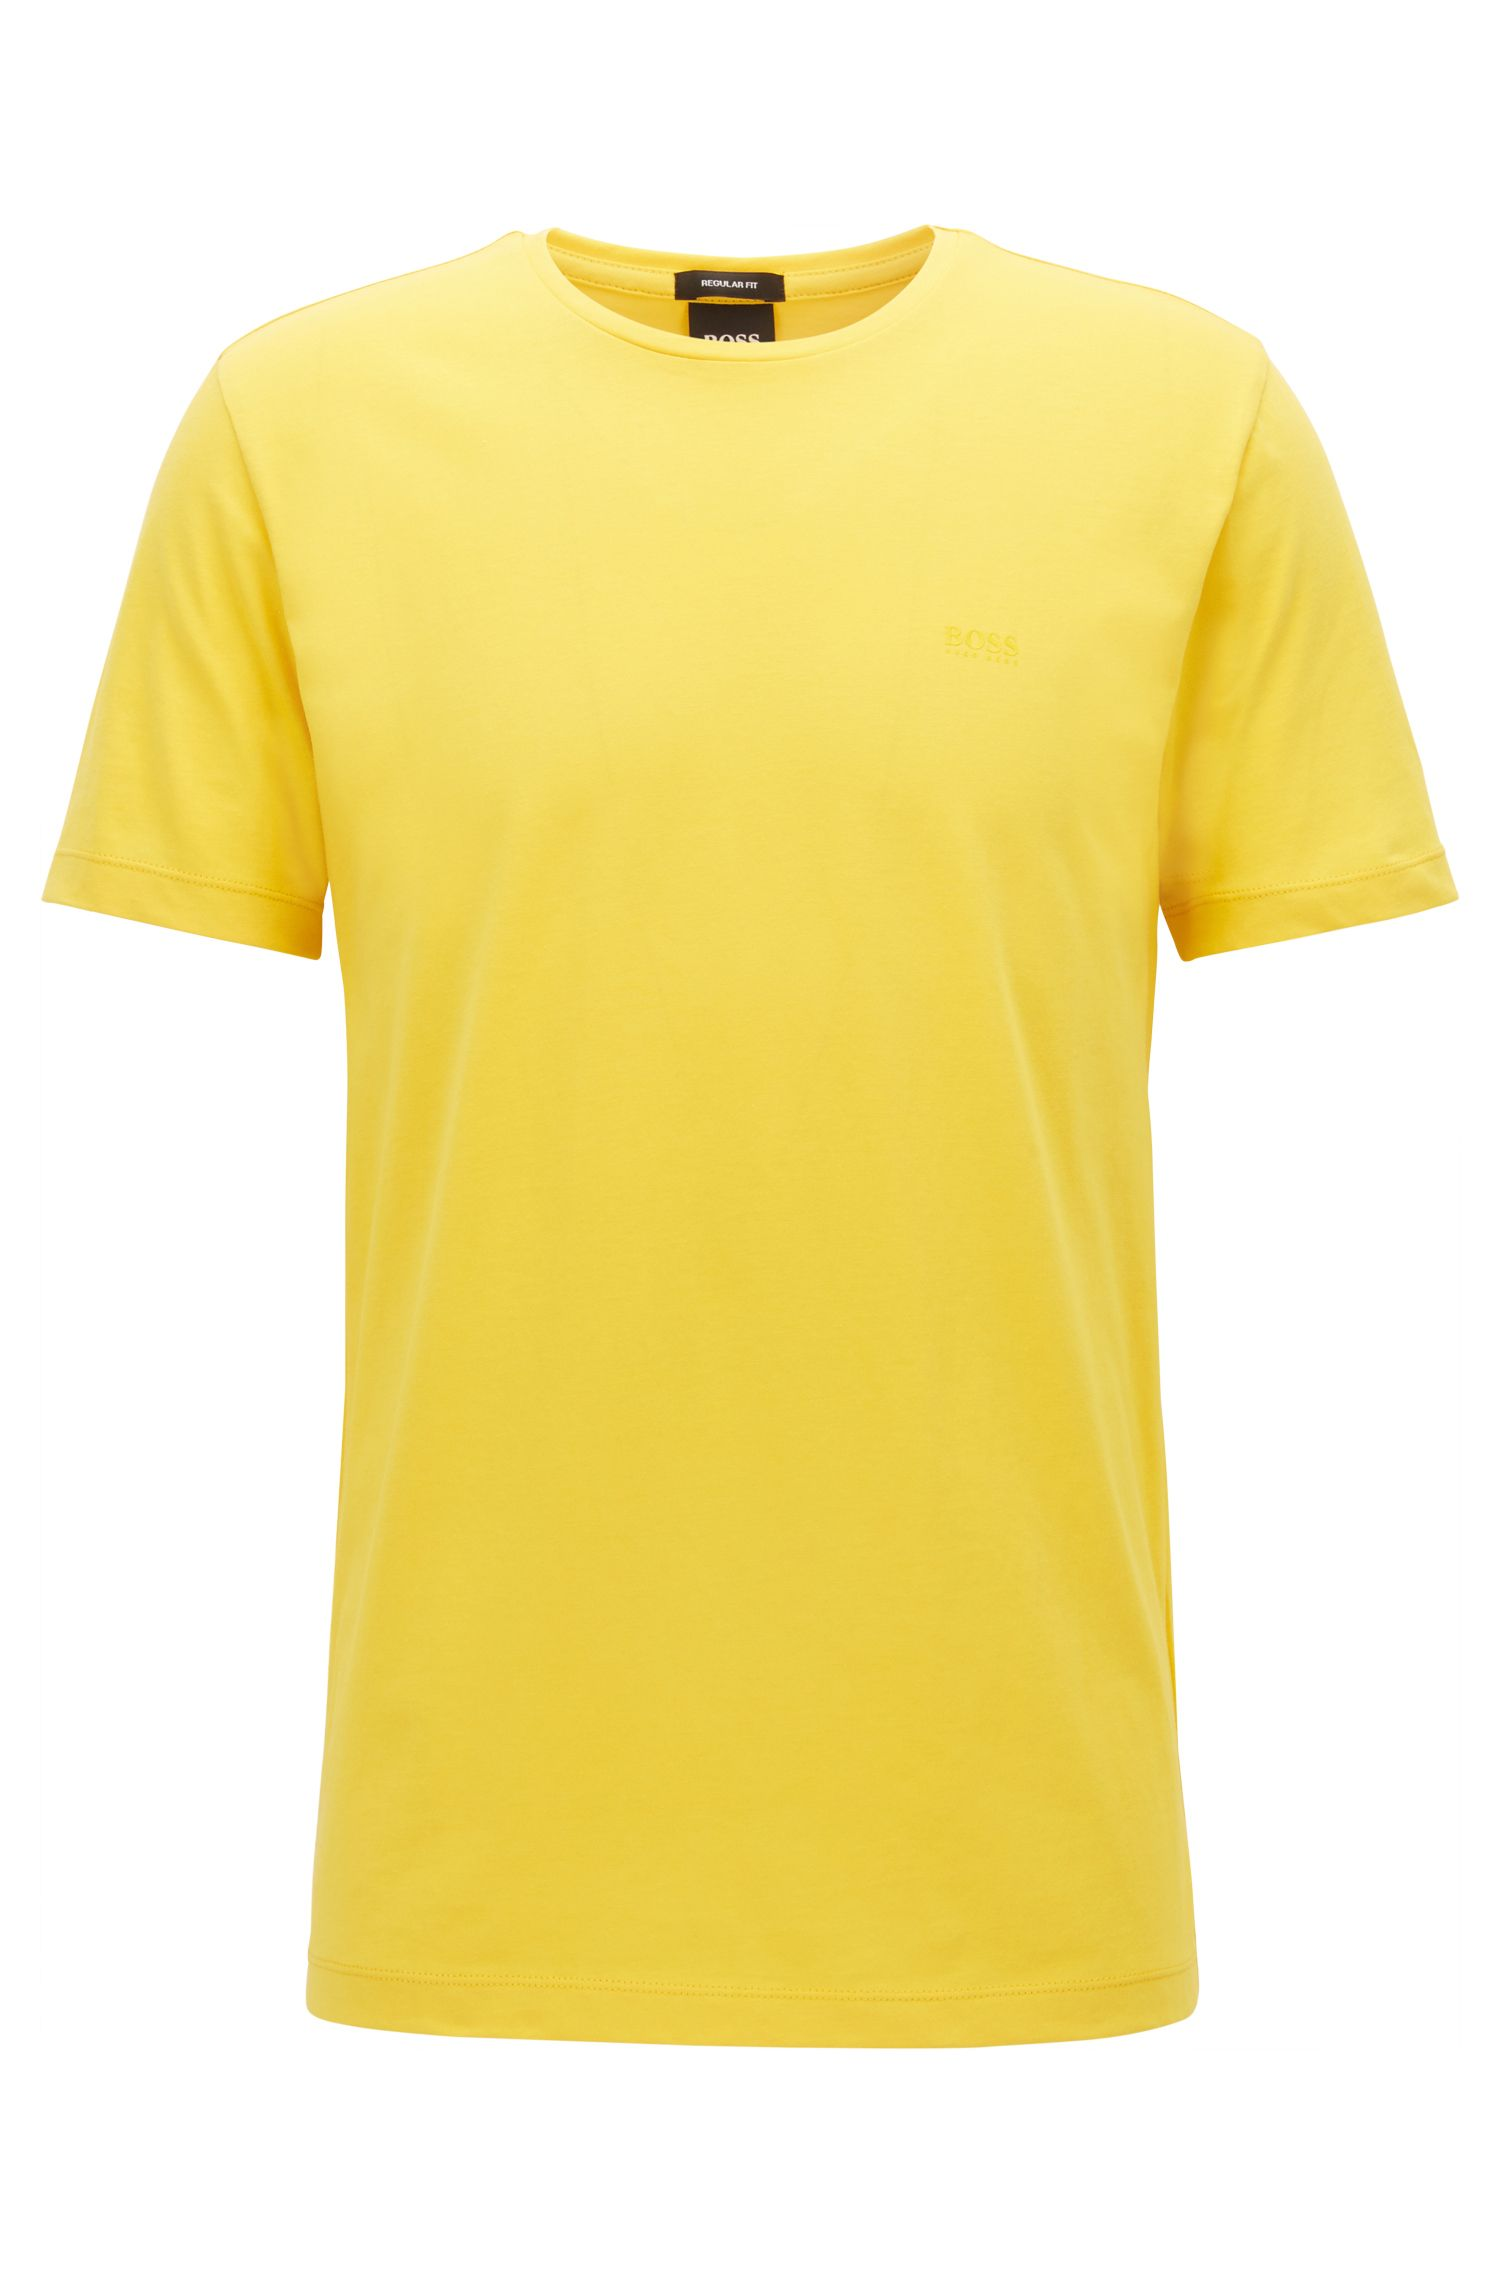 T-shirt a girocollo in jersey tinto in filo